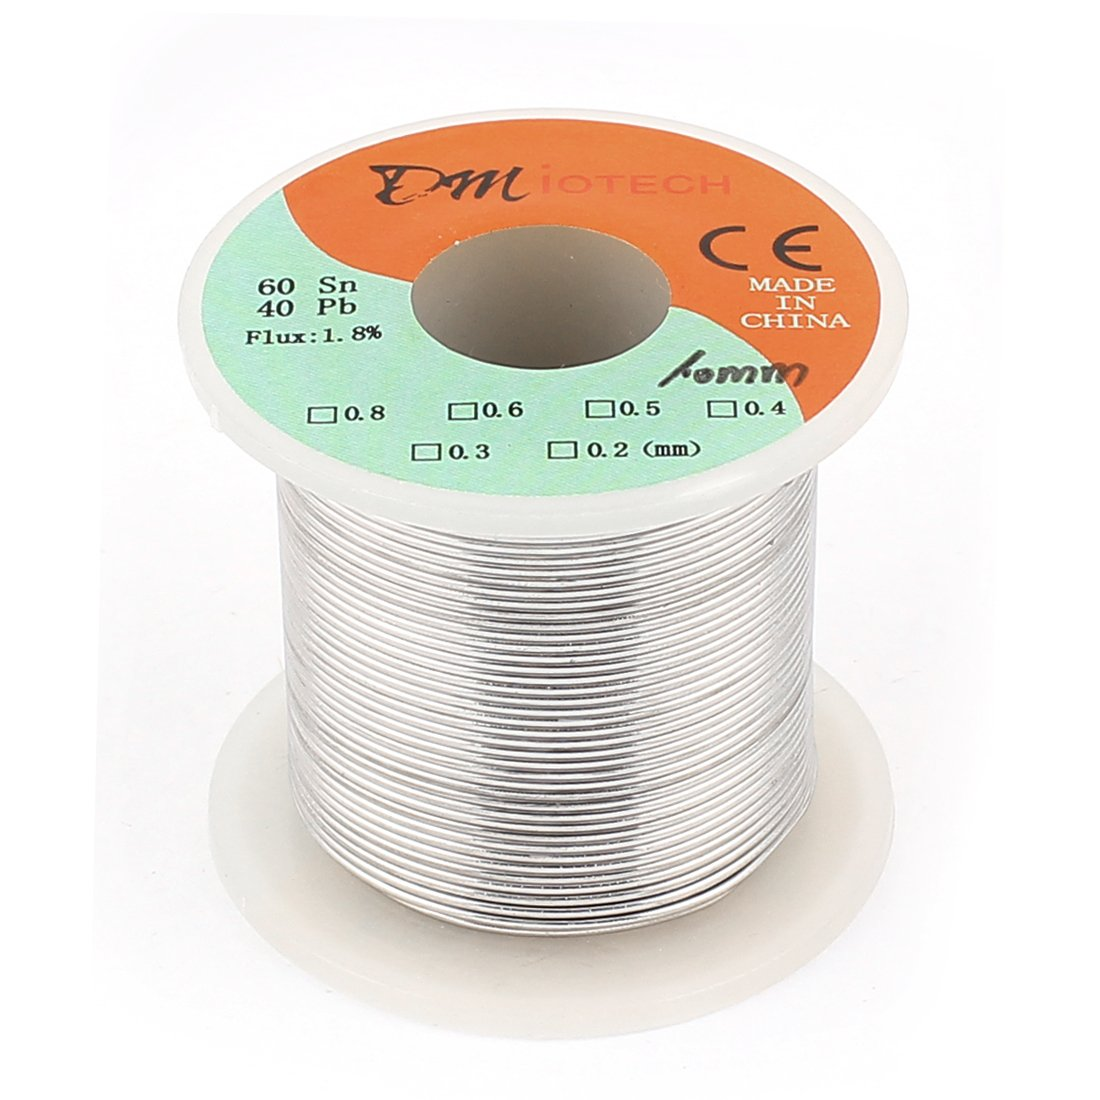 DMiotech 1mm 200G 60/40 Rosin Core Tin Lead Roll Soldering Solder Wire